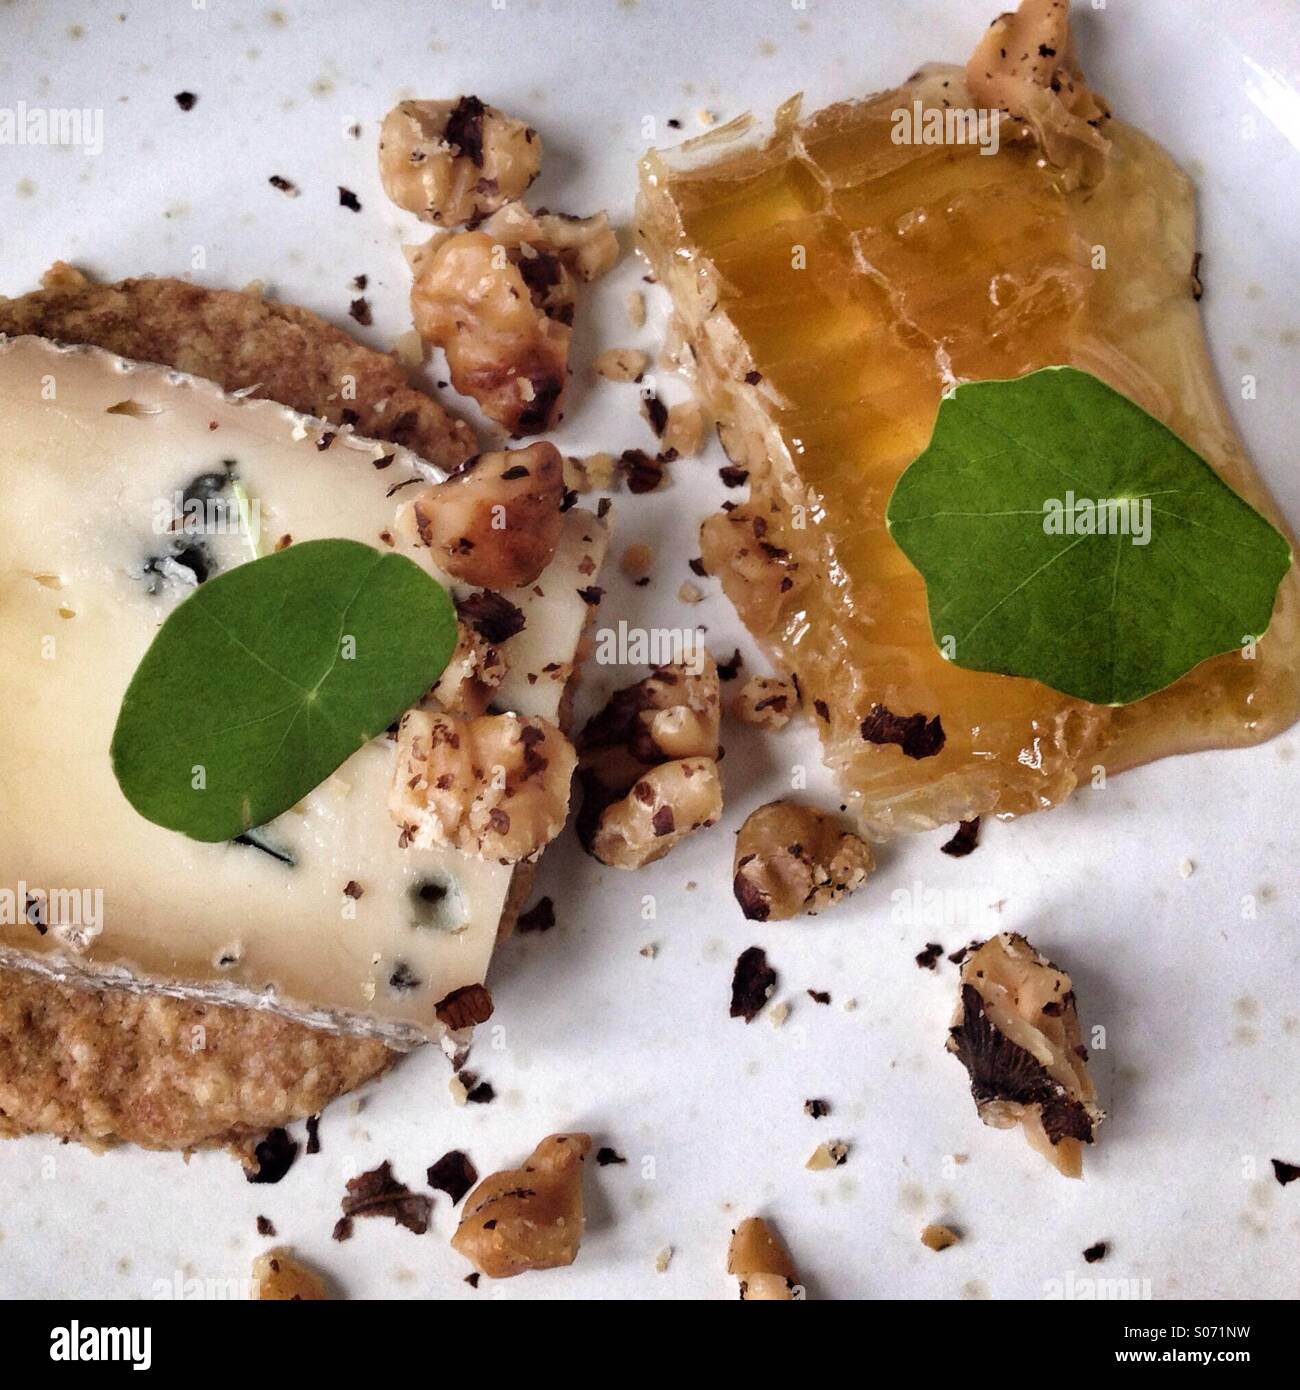 Blue cheese and honeycomb for dessert dish Stock Photo